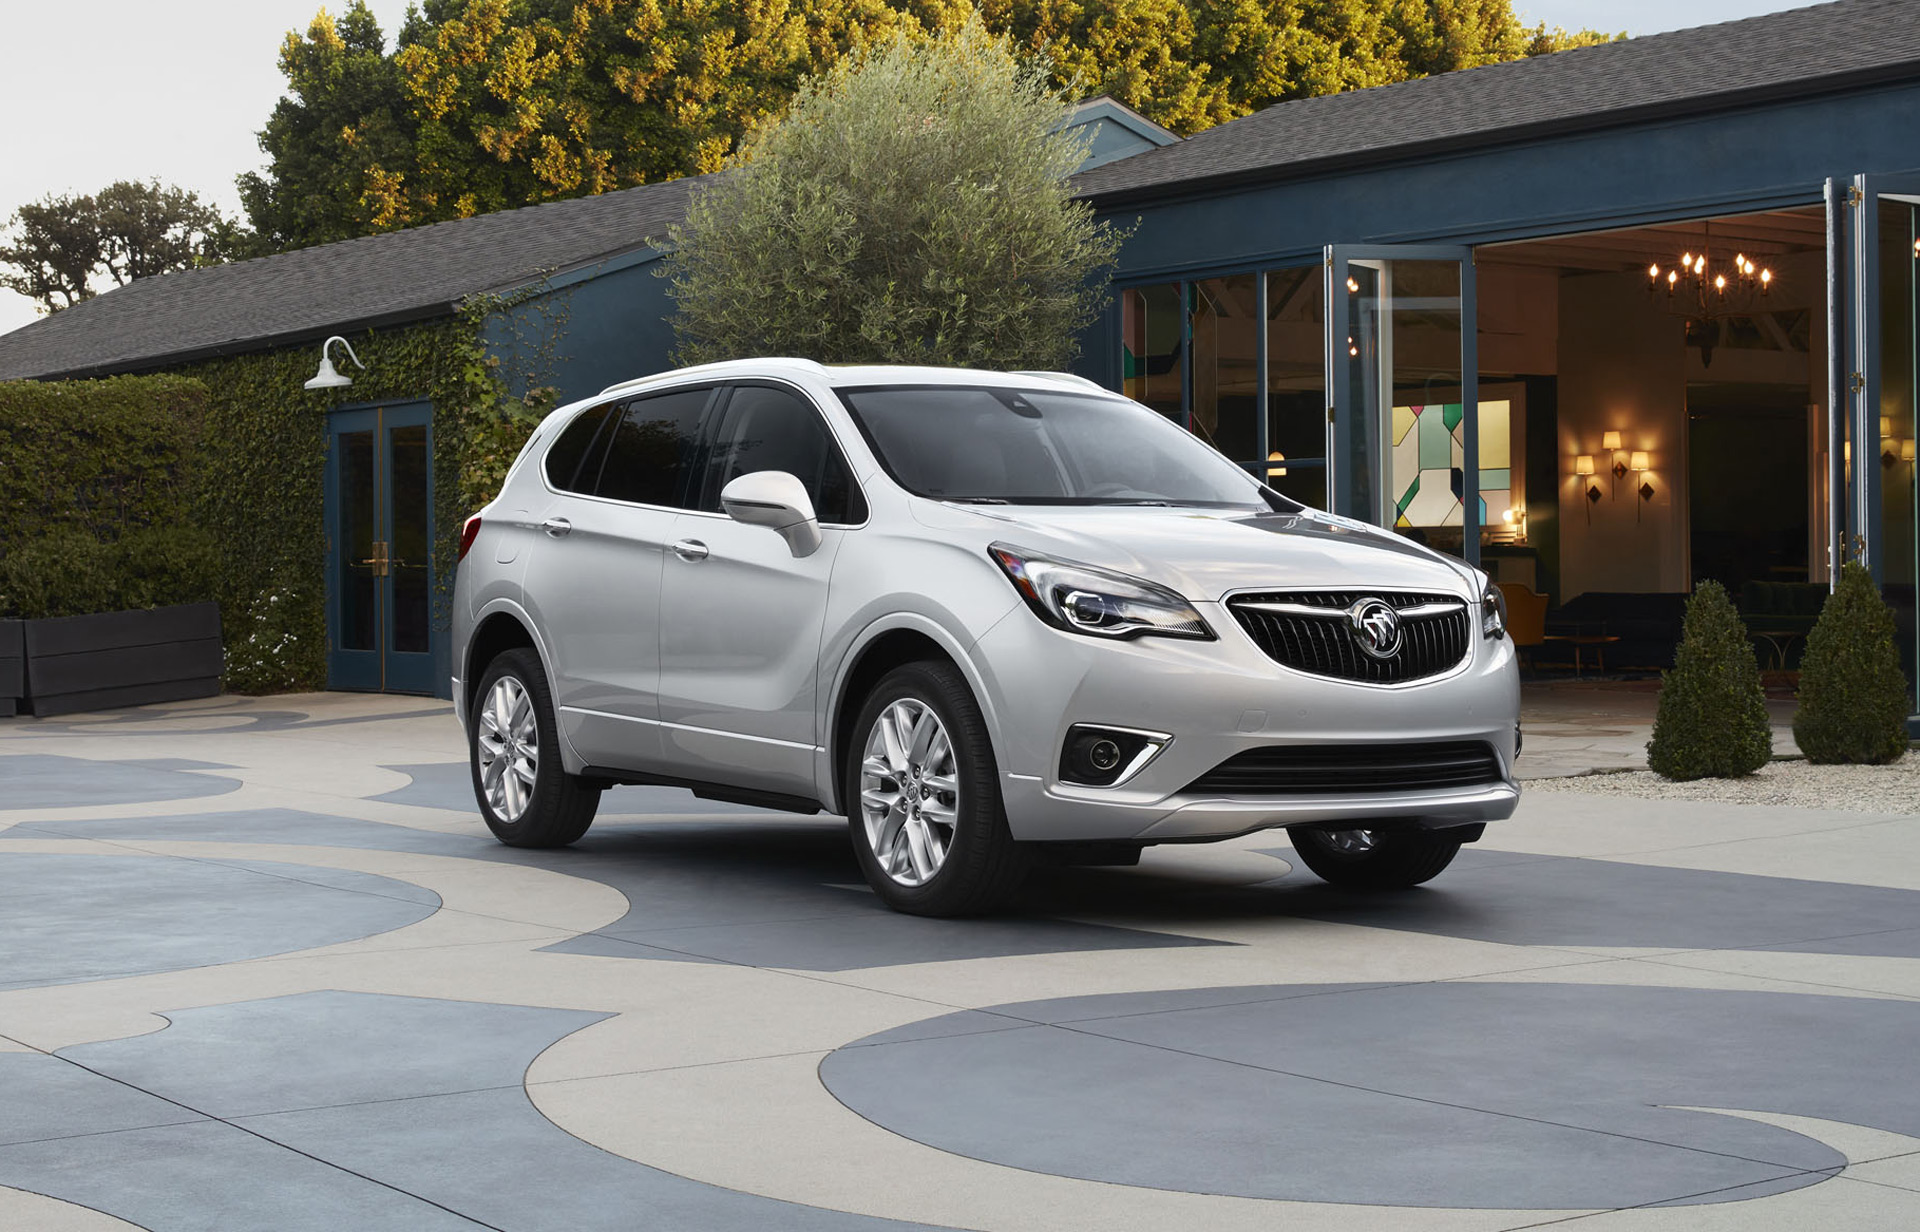 More gears, less money: 2019 Buick Envision updated